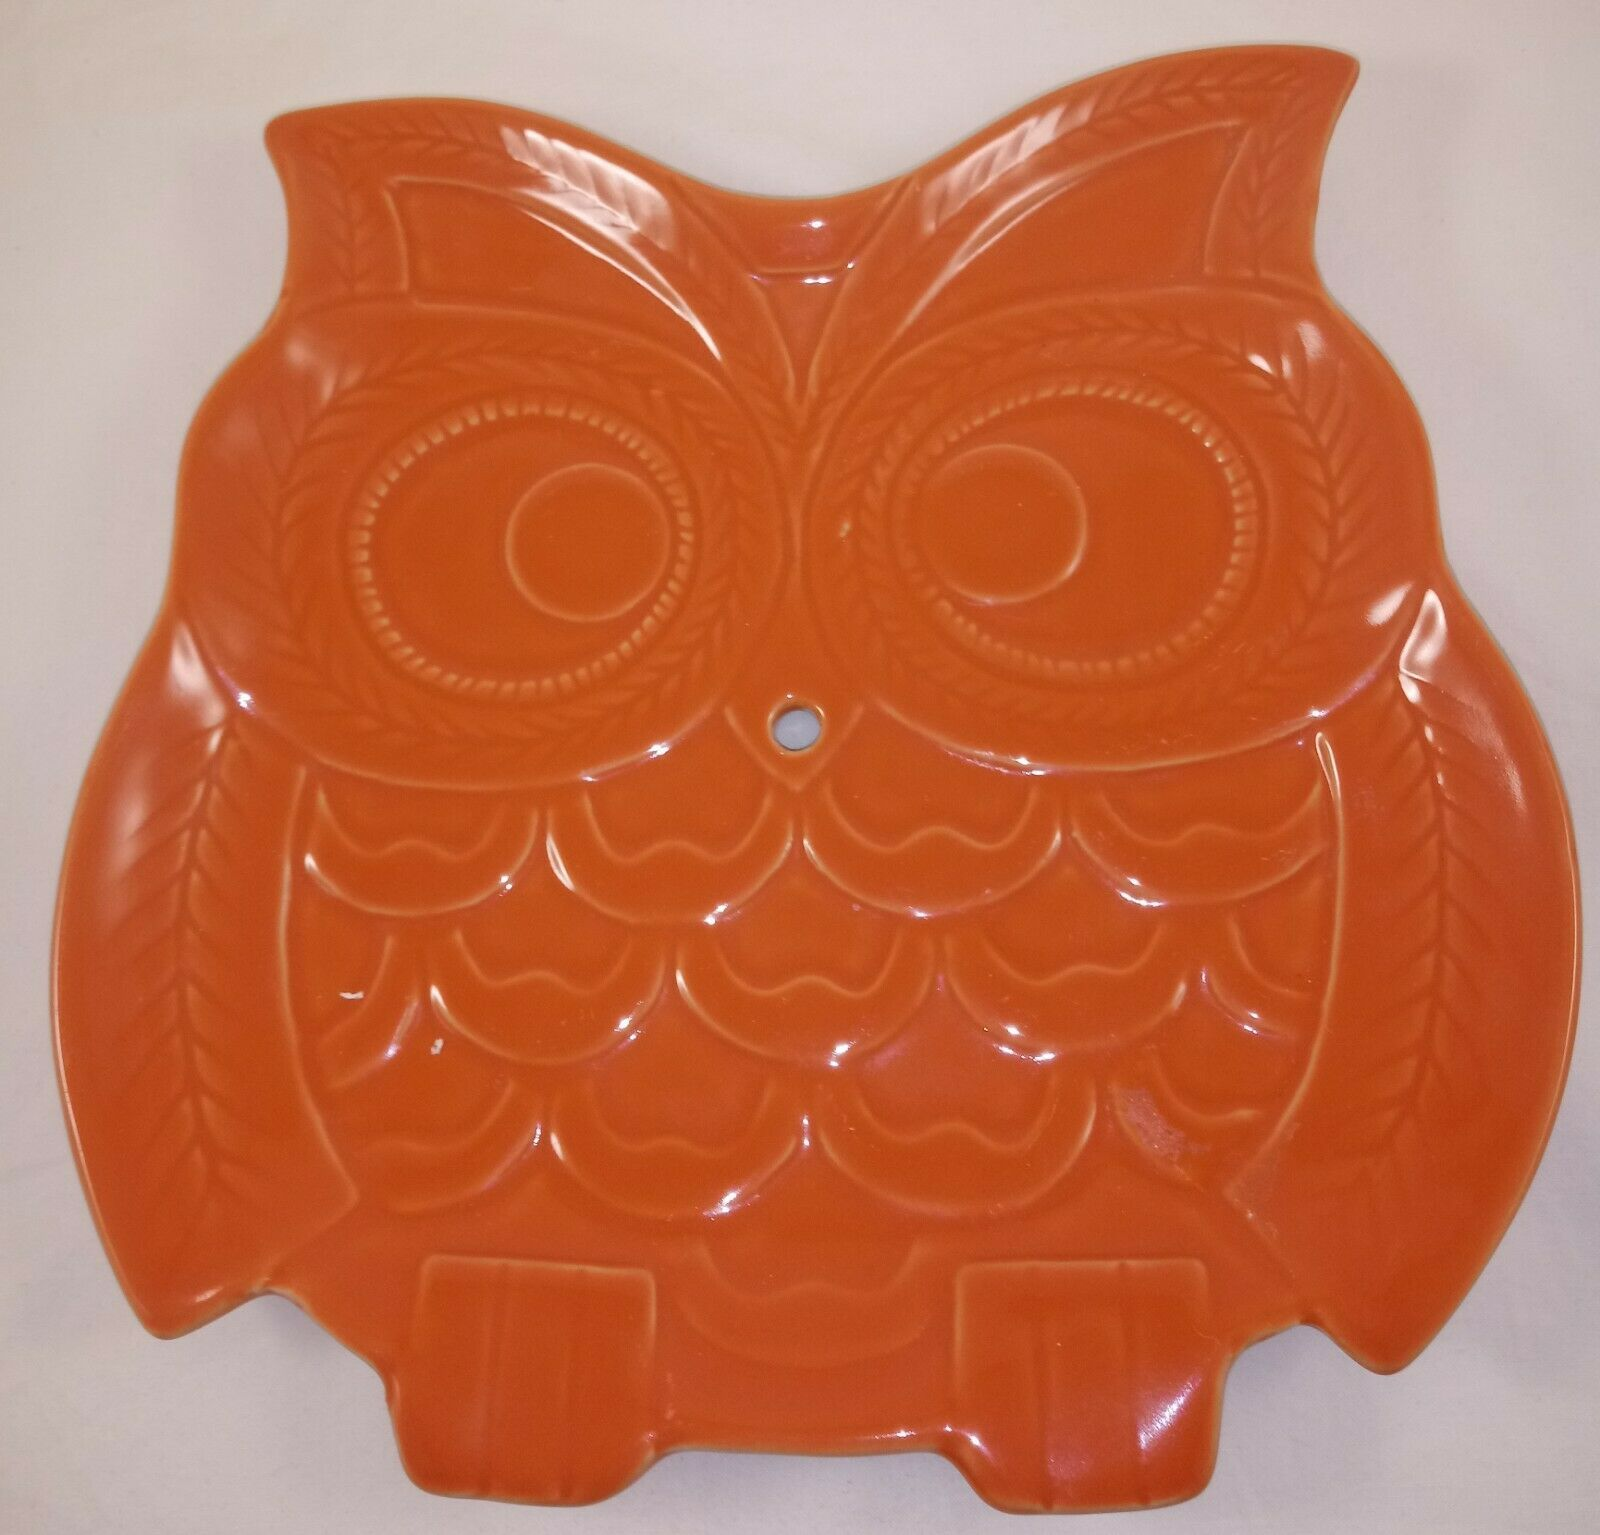 Set of 3 Owl Shaped Decorative Ceramic Serving Snack Plate Candy Dish